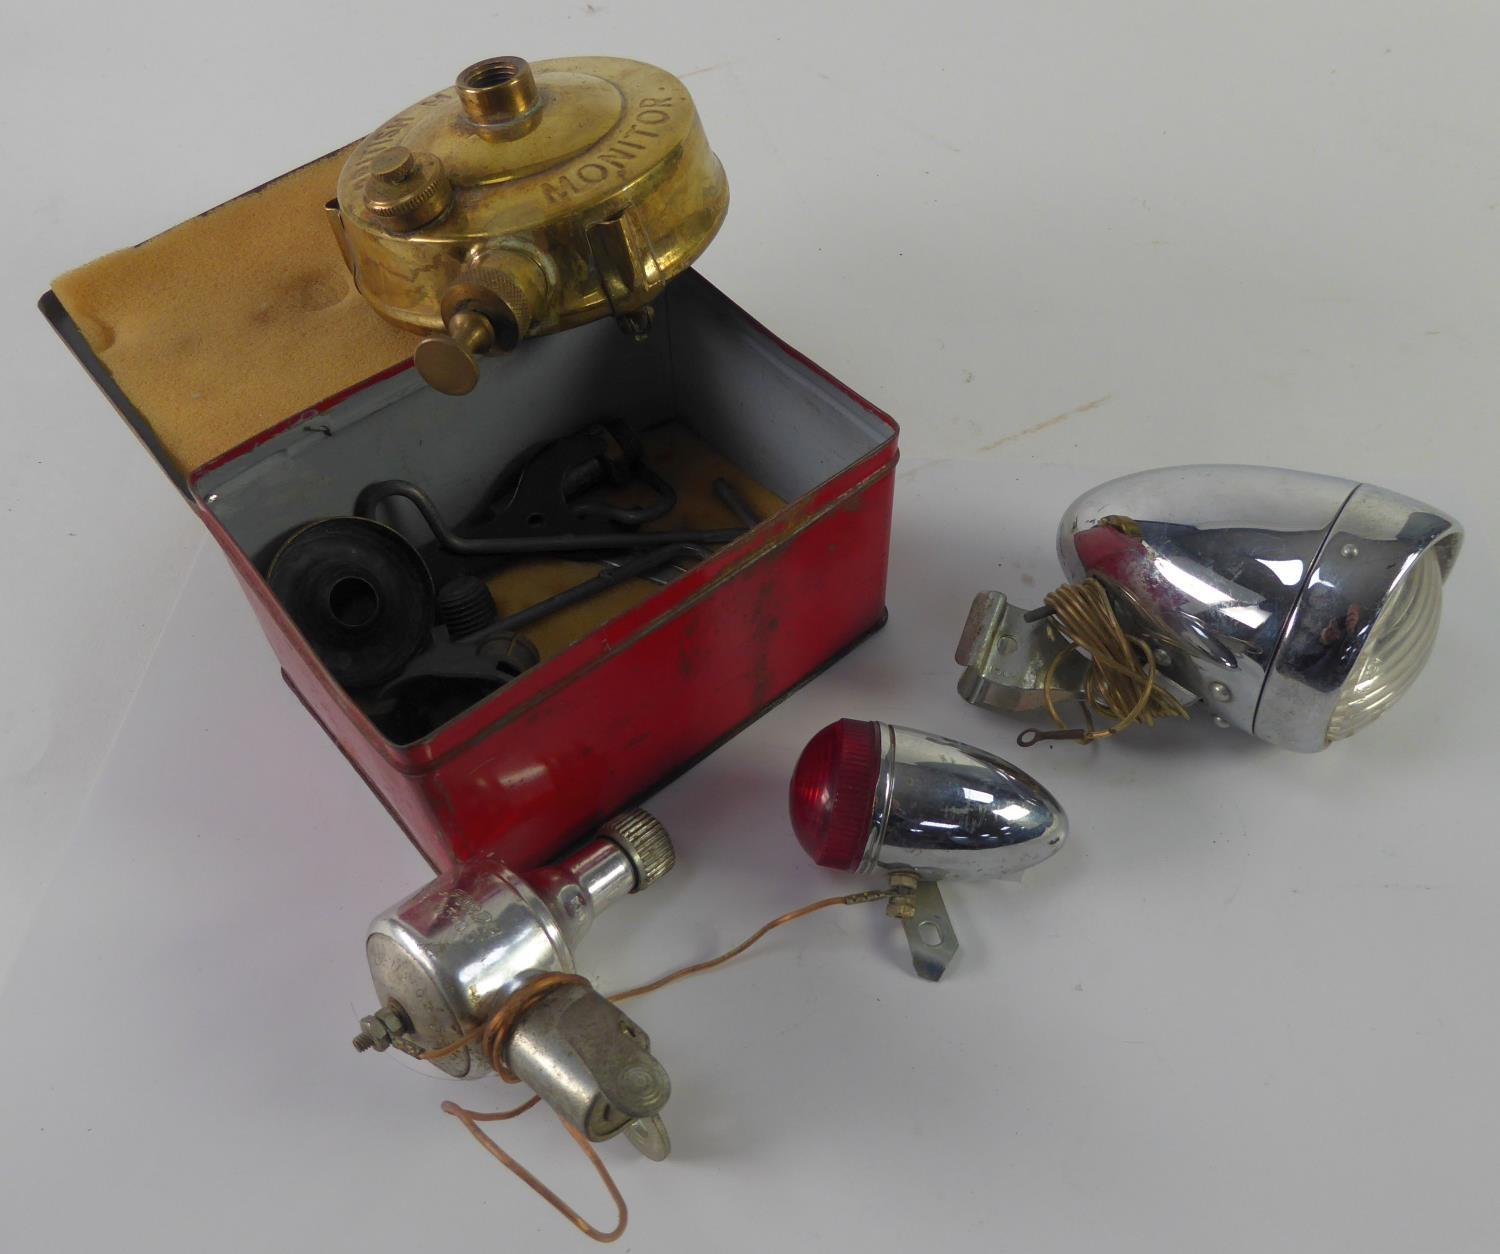 Lot 456 - 'MONITOR' TOURING STOVE, British made, compact primus type stove, in original pictorial lidded tin